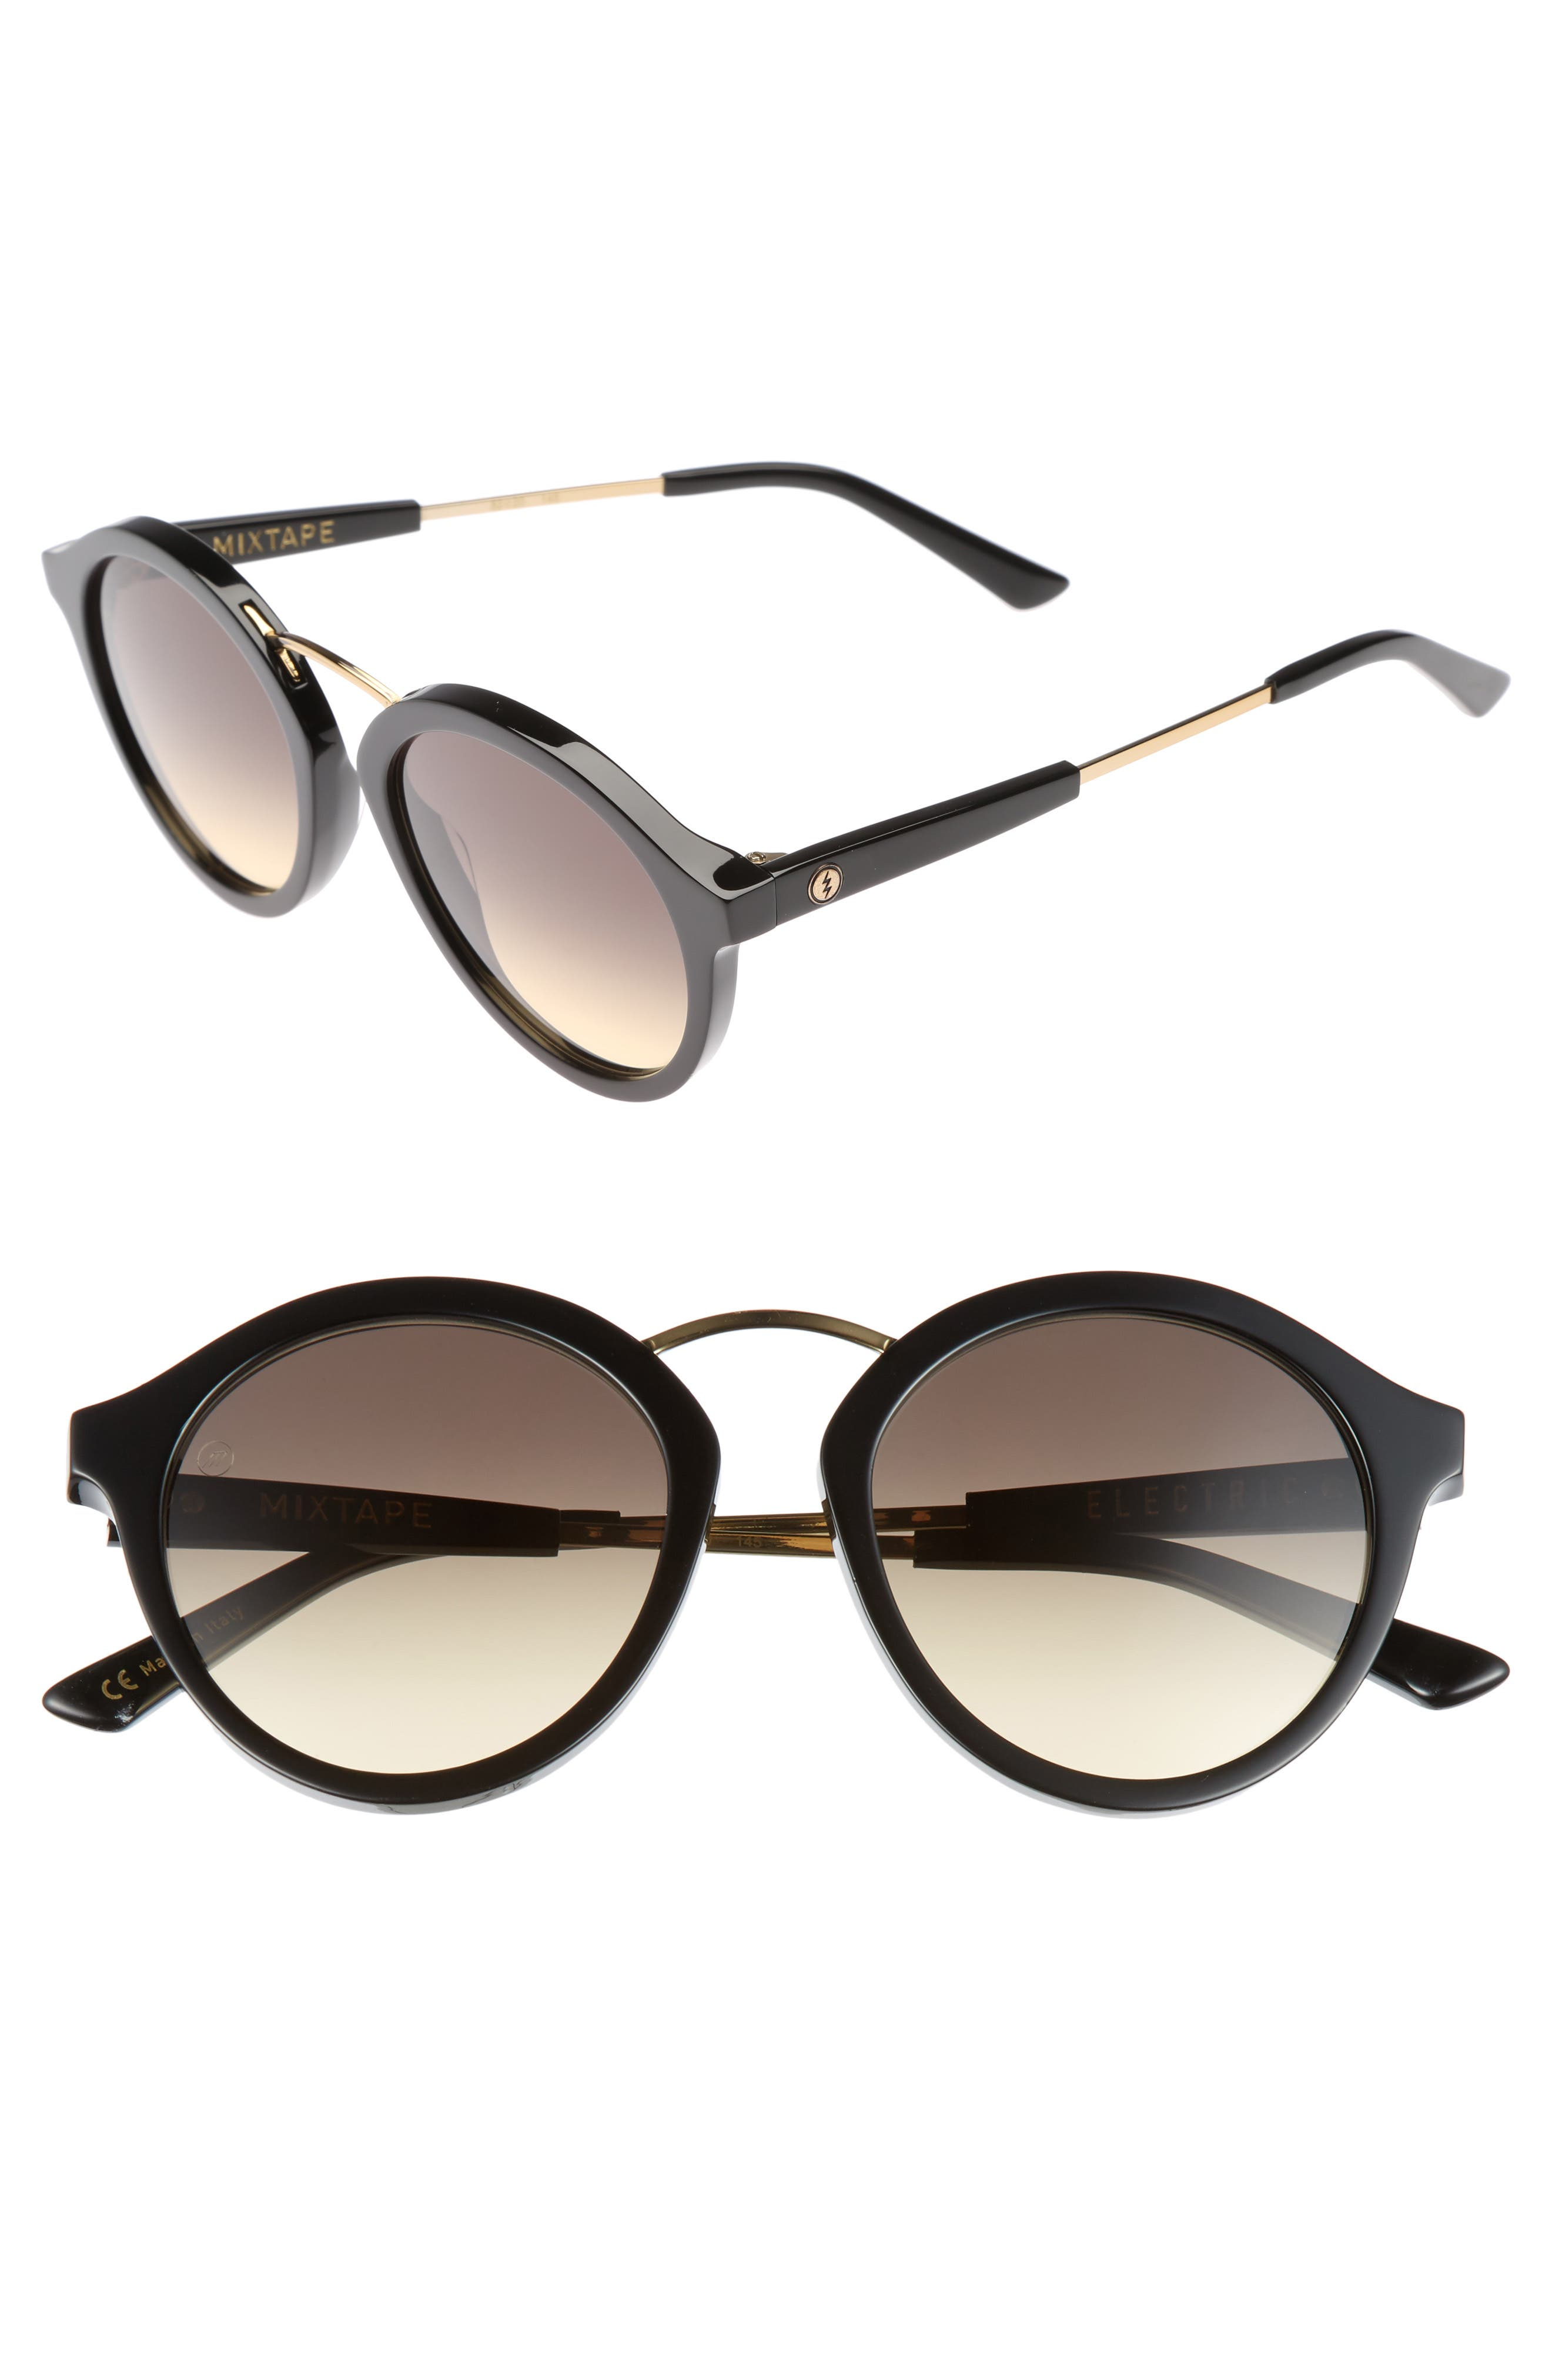 Mix Tape 52mm Gradient Round Sunglasses,                         Main,                         color, 001